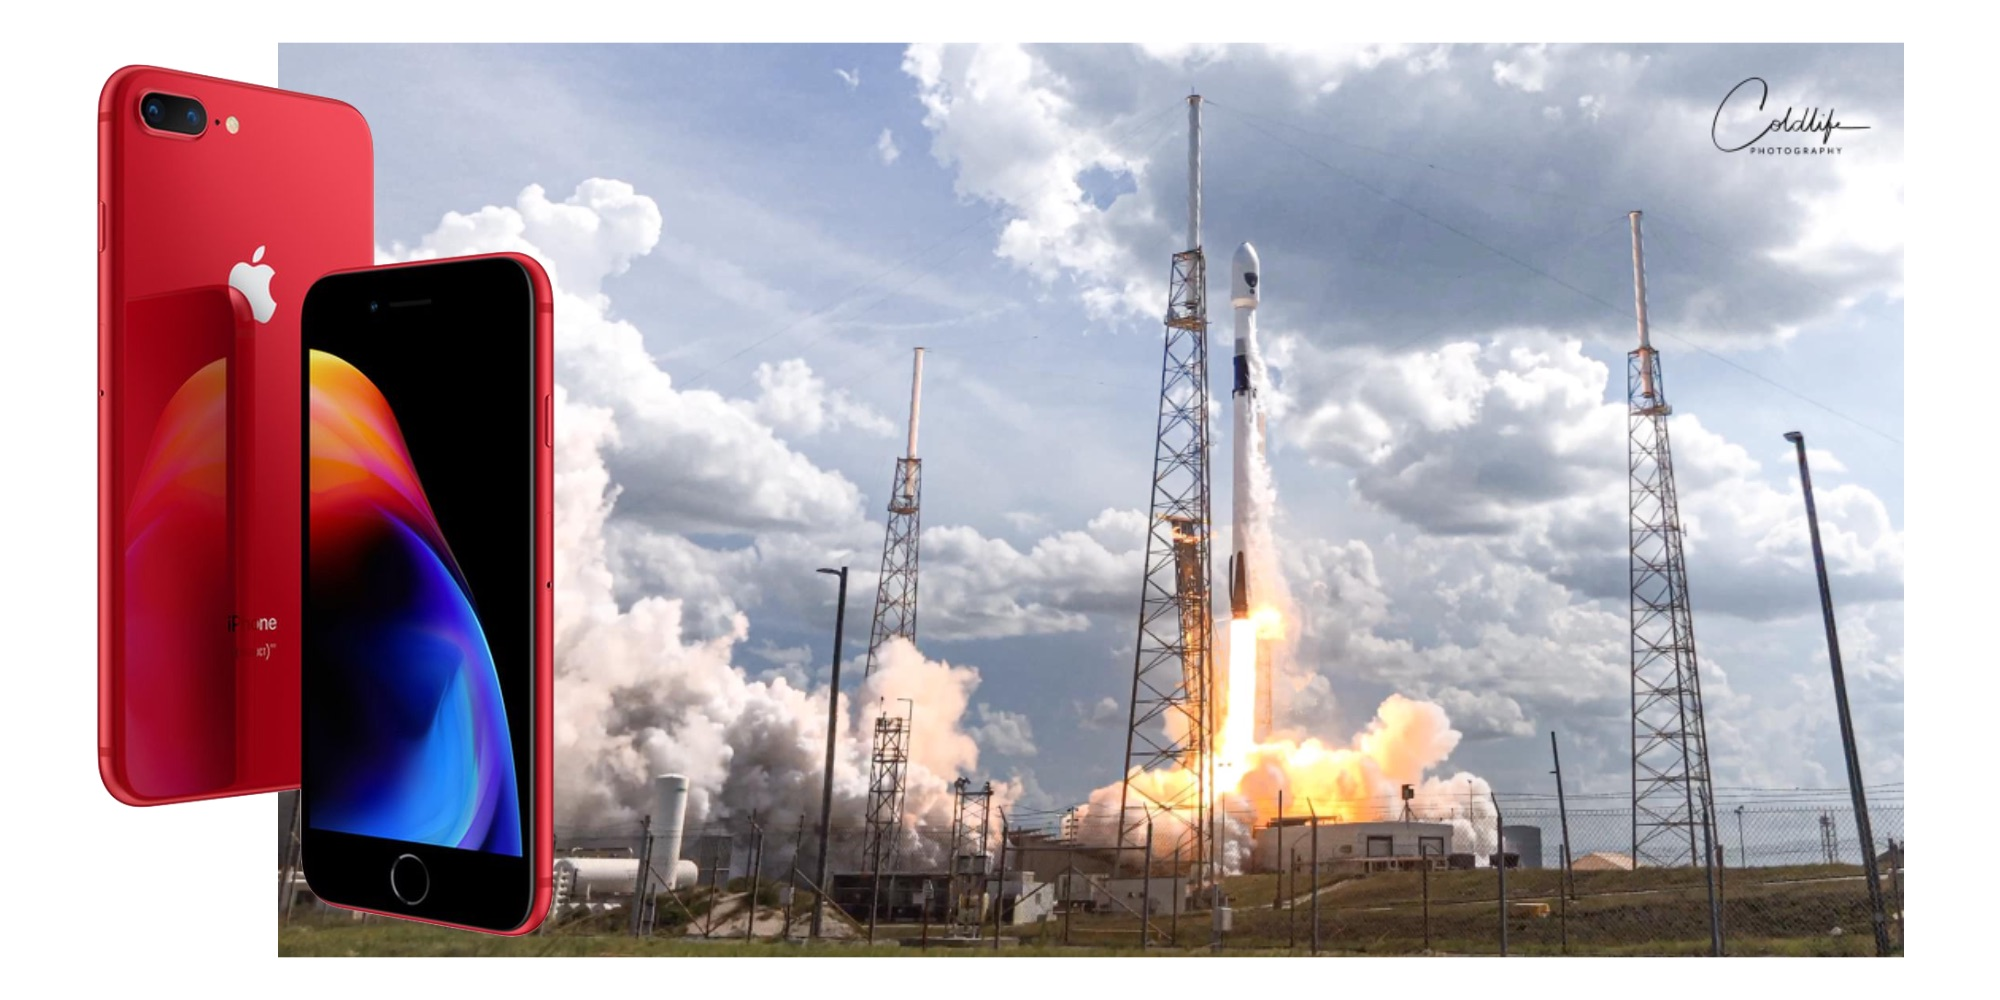 photo of Check out this SpaceX Falcon 9 rocket launch remotely captured with an iPhone 8 Plus image